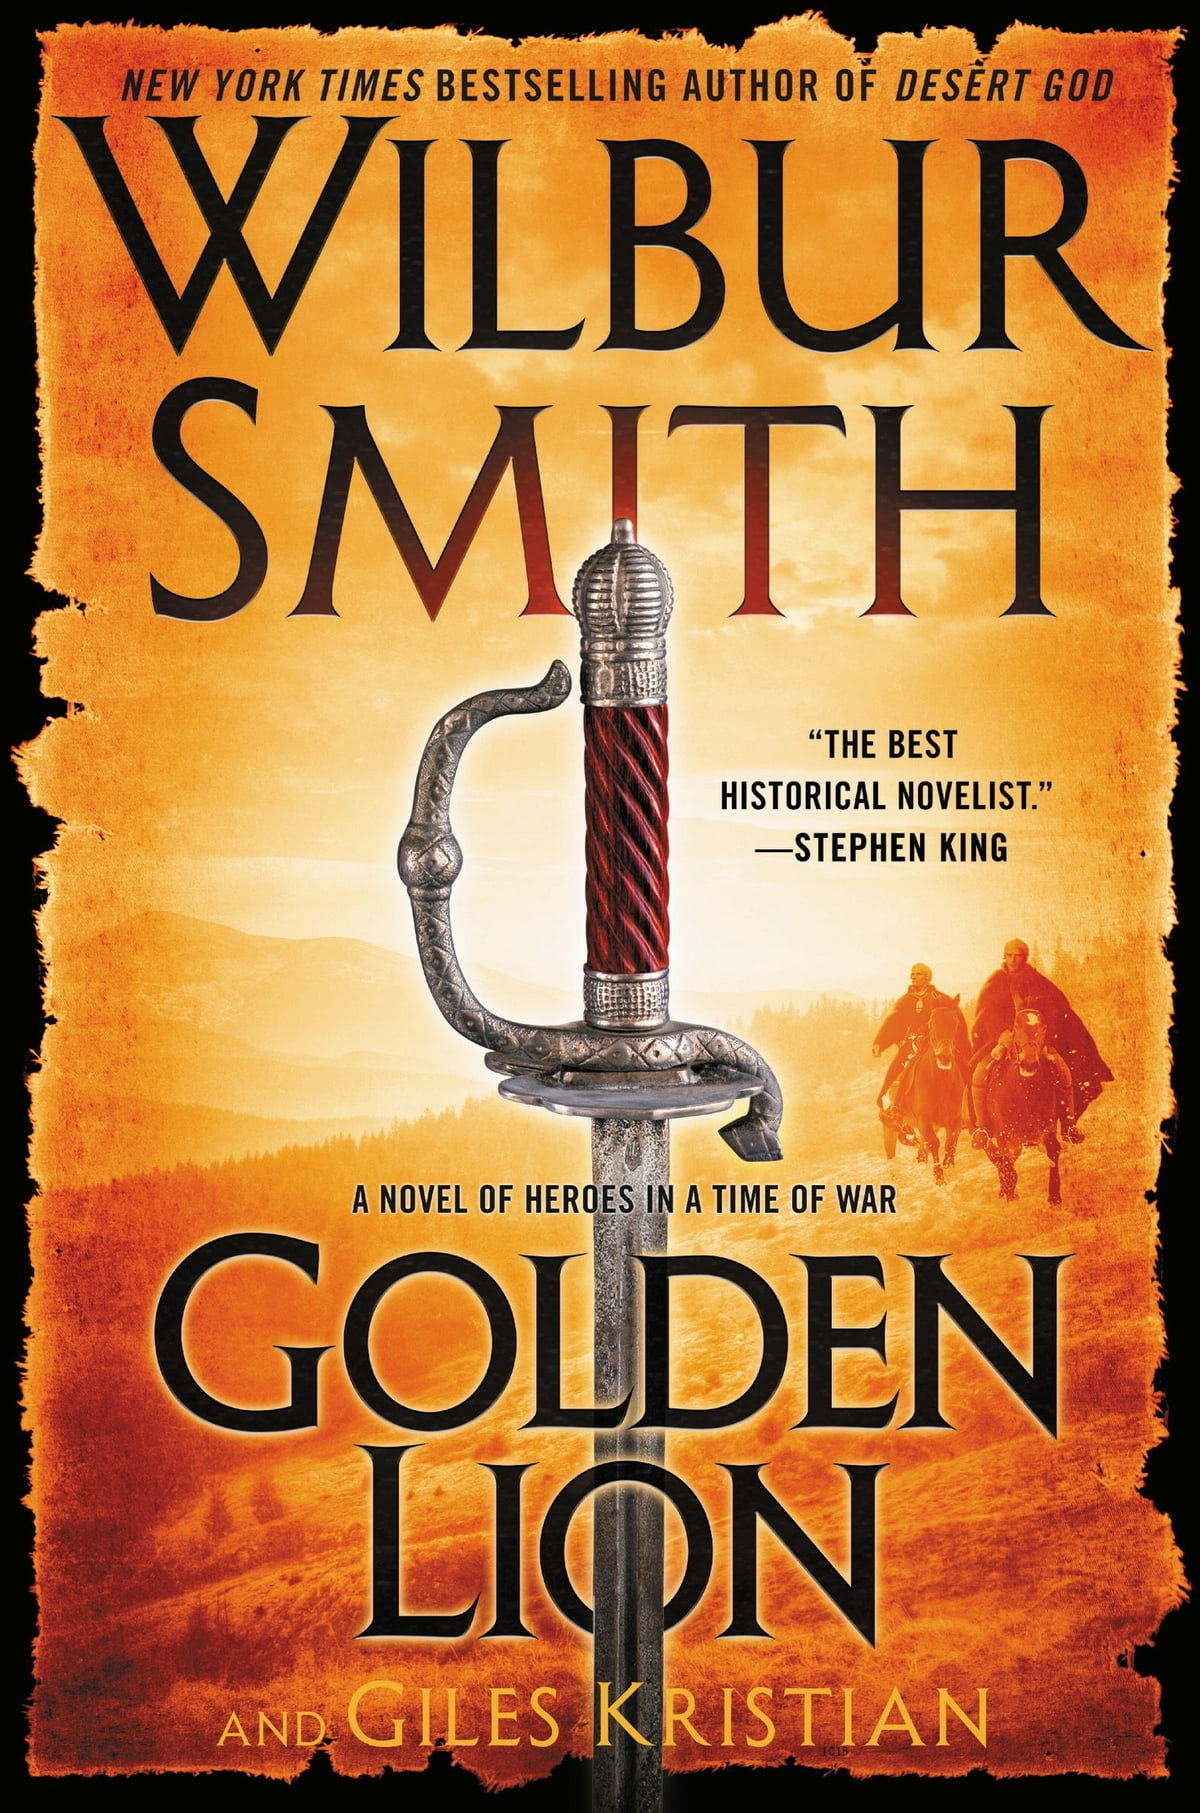 Golden Lion  A Novel Of Heroes In A Time Of War Ebook By Wilbur Smith